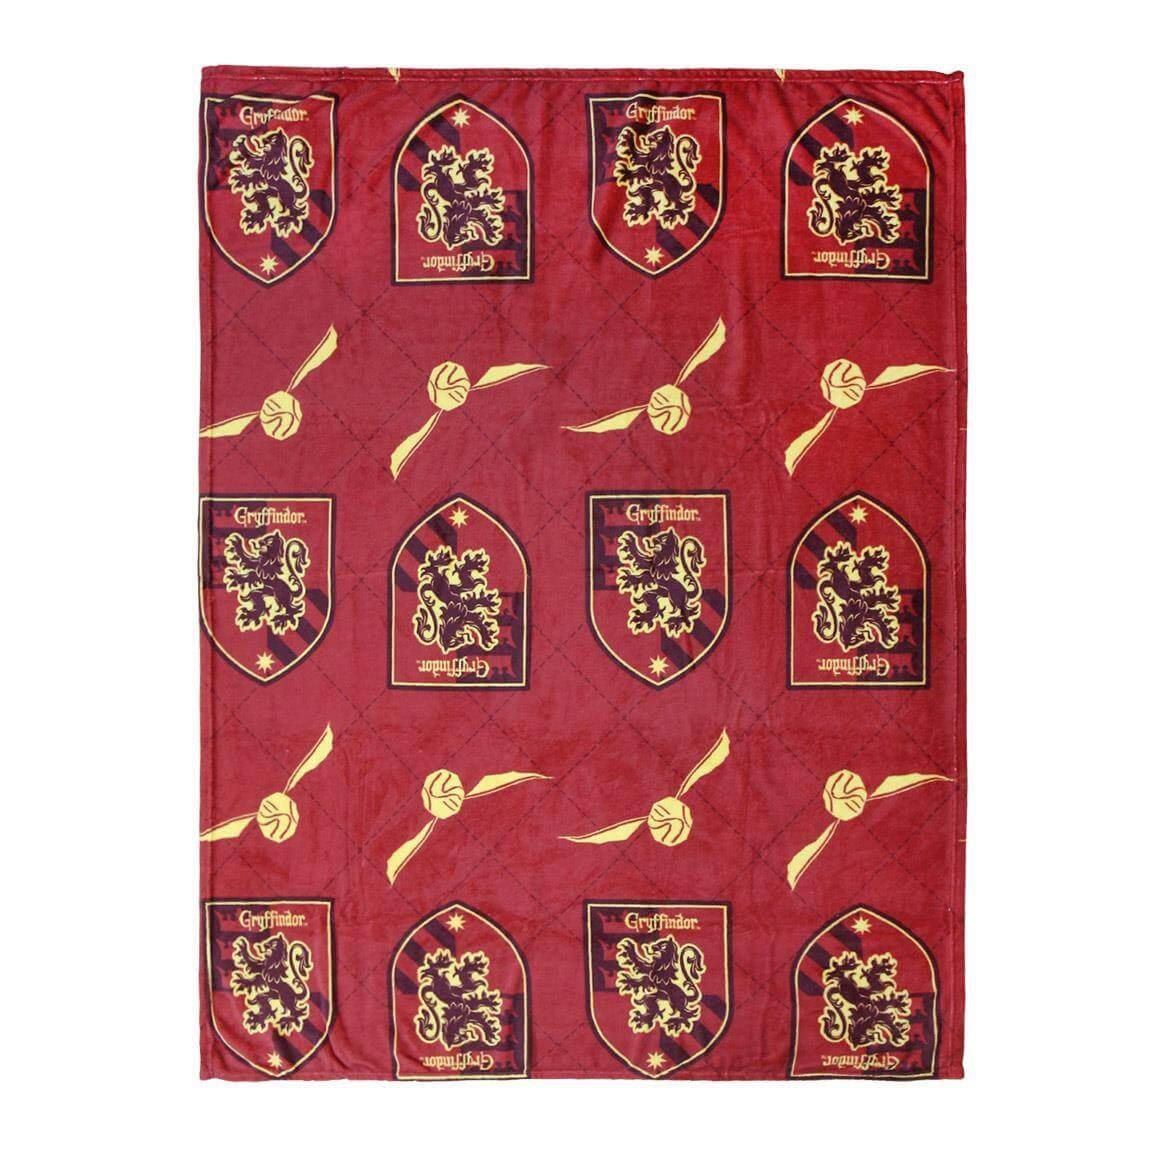 PLAID COUVERTURE POLAIRE GRYFFONDOR VIF D'OR 120 X 160 CM - HARRY POTTER